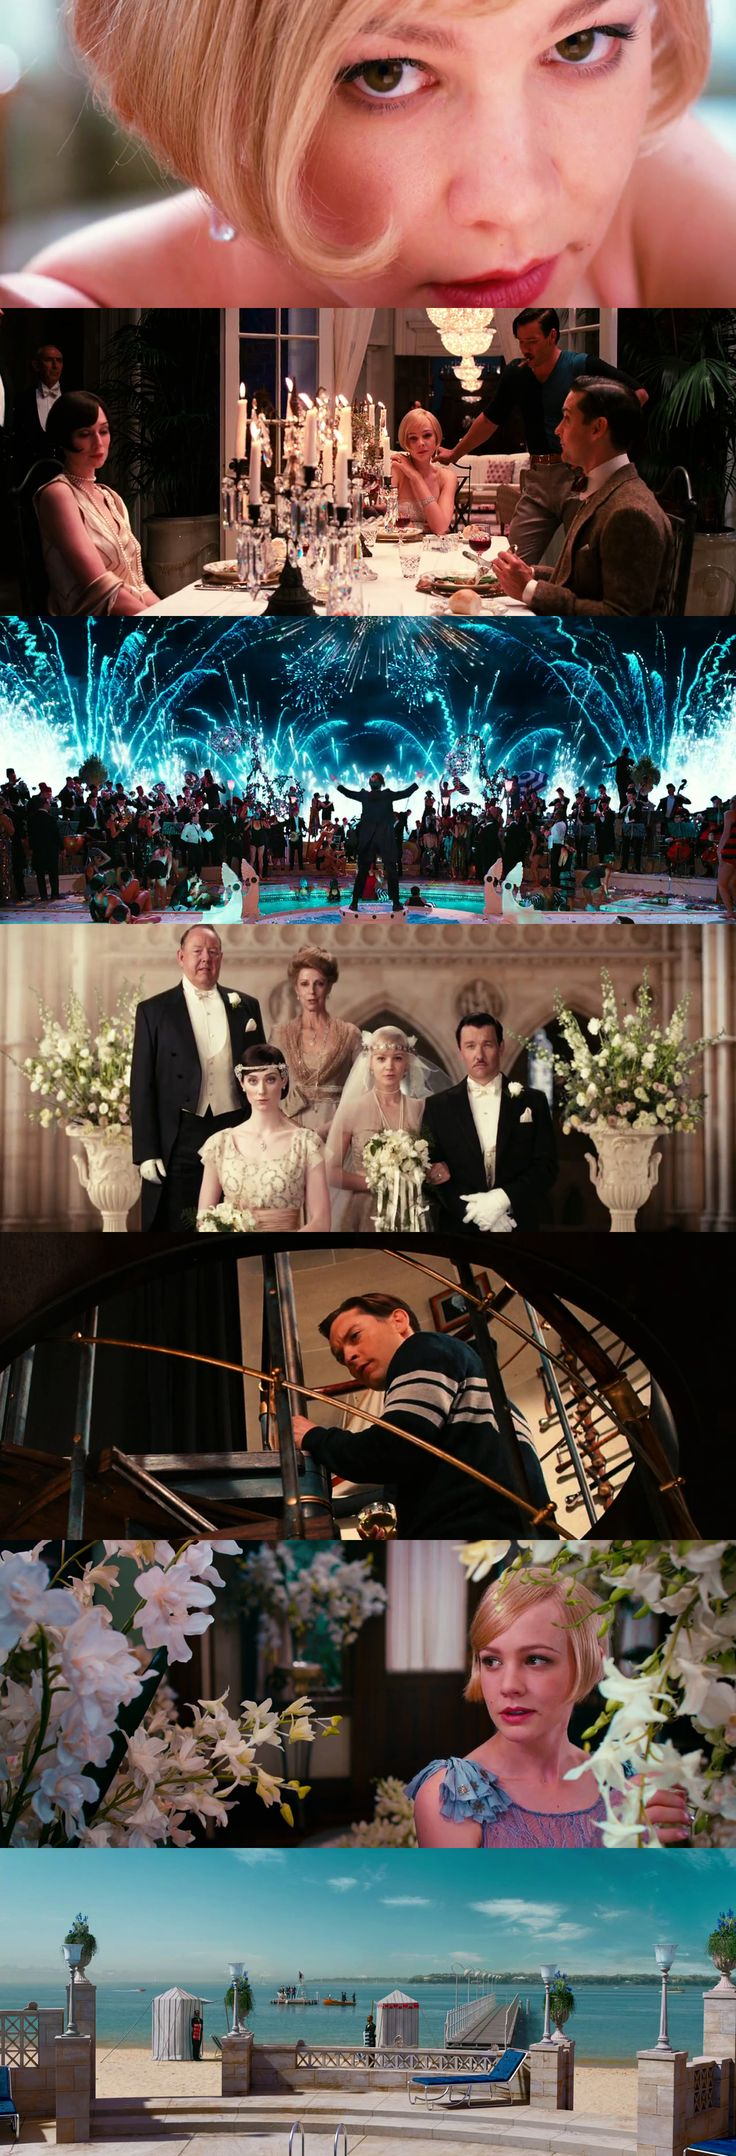 The Great Gatsby, cinematography by Simon Duggan | 2013